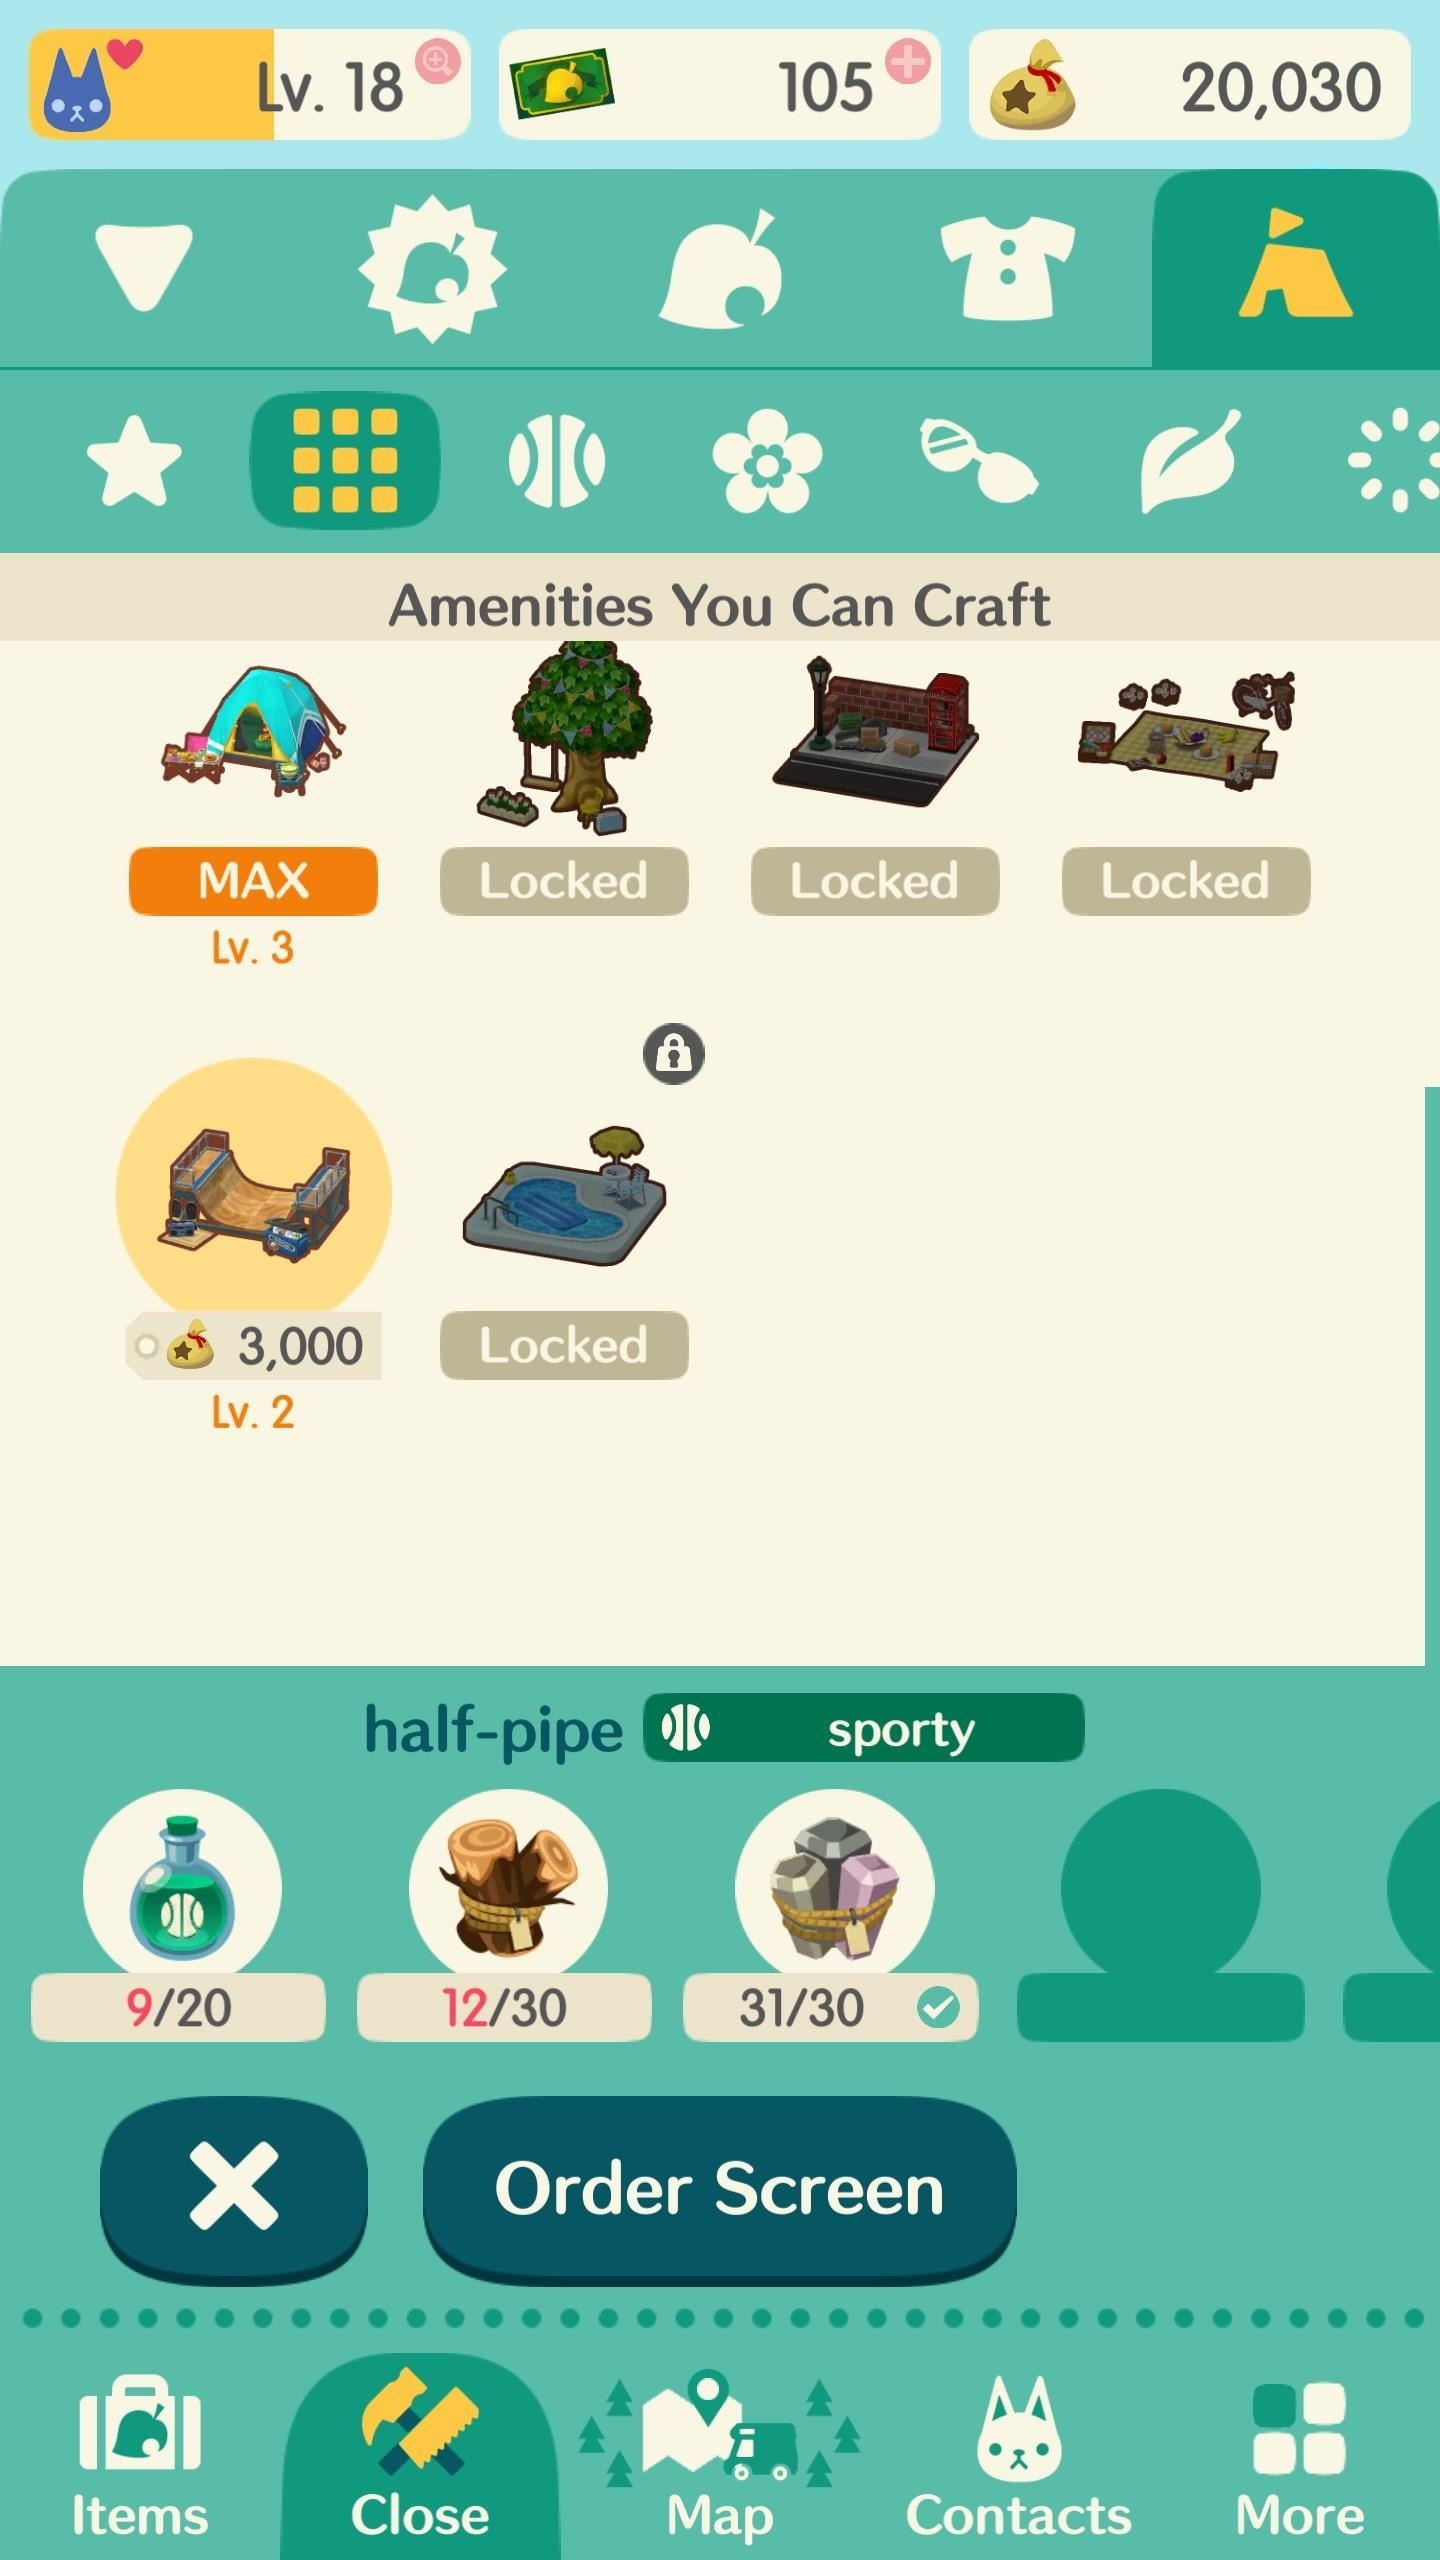 Pocket Camp 101 Everything You Need To Know About Crafting In